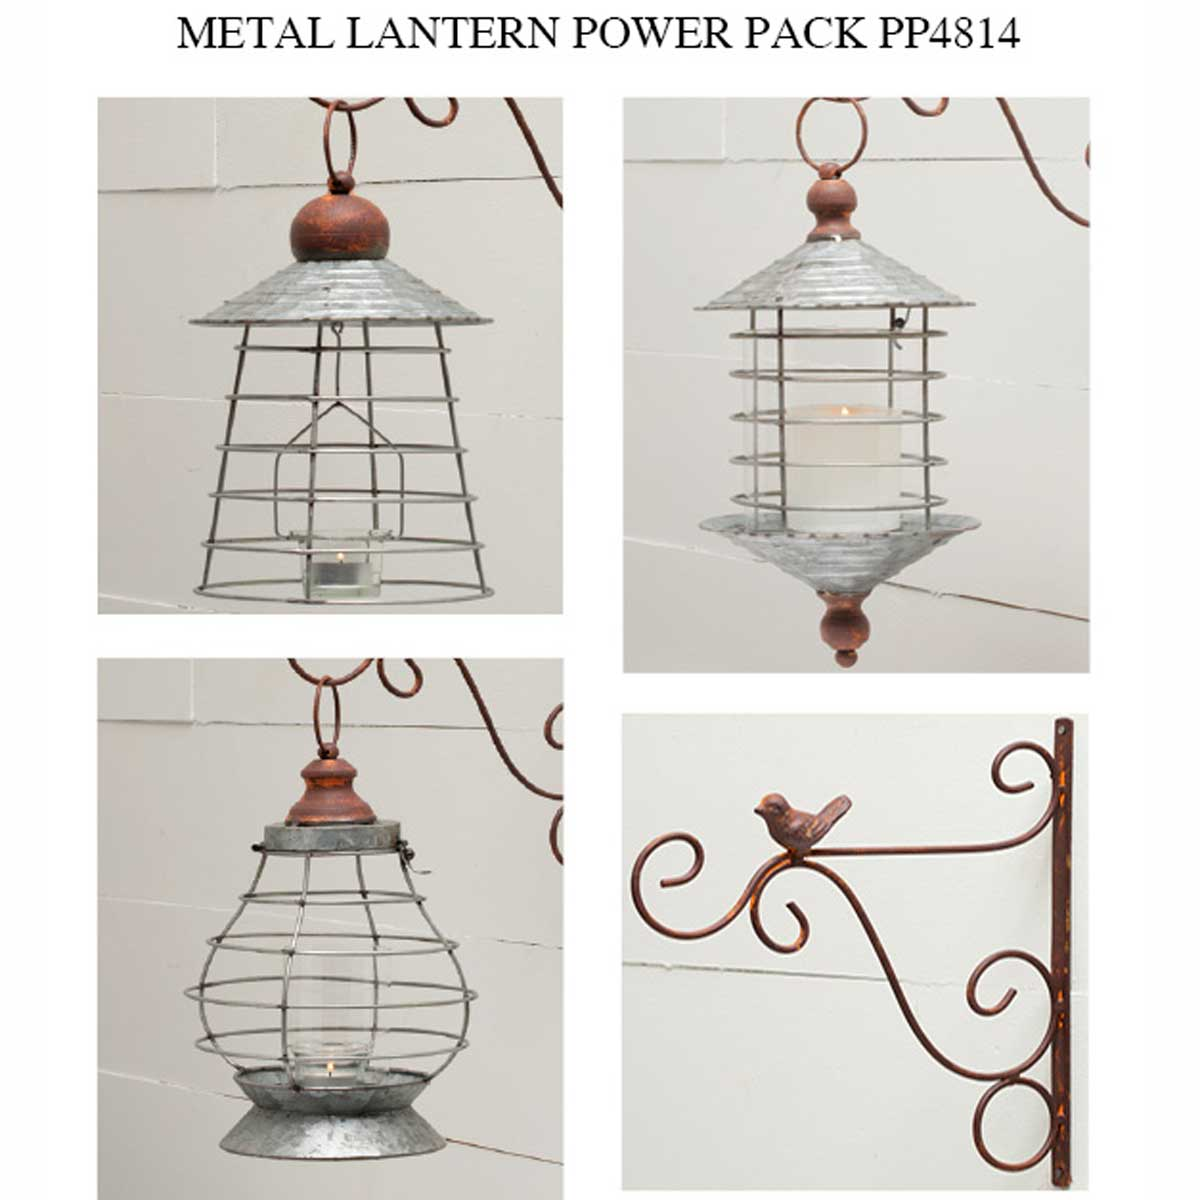 METAL LANTERN POWER PACK 4 UNITS